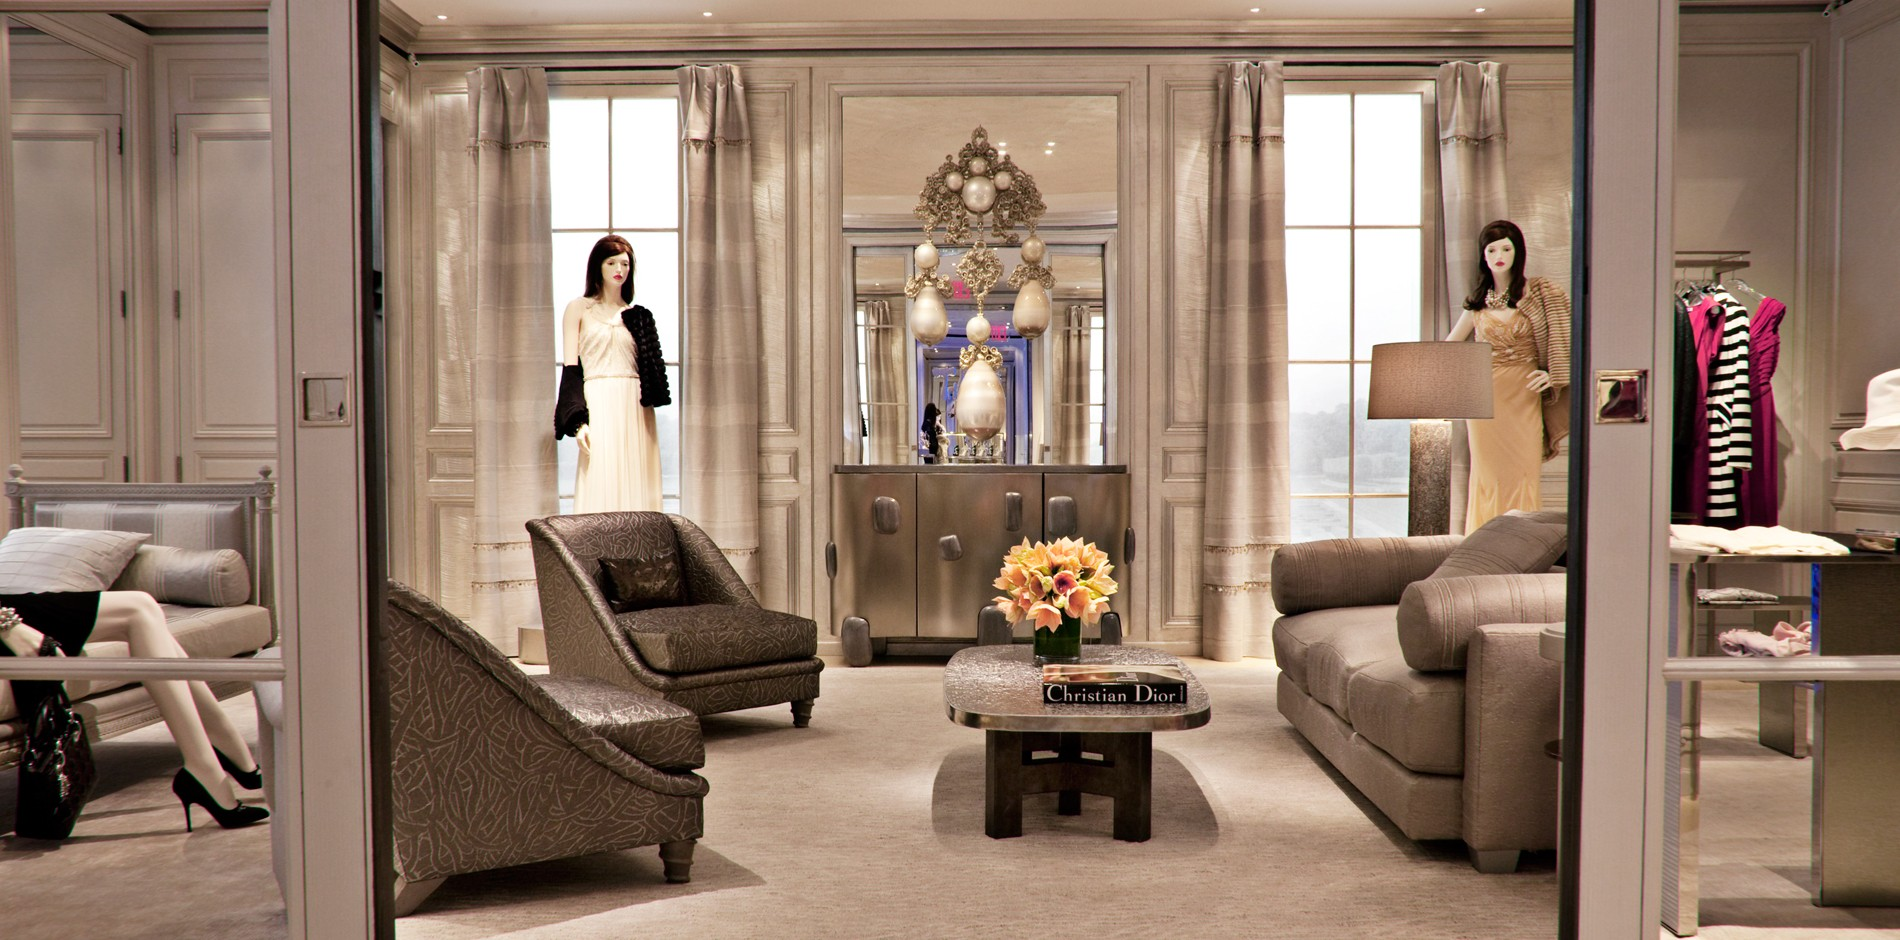 add6bd5dc52 Christian Dior Flagship Store - New York City Fit-out, Renovation